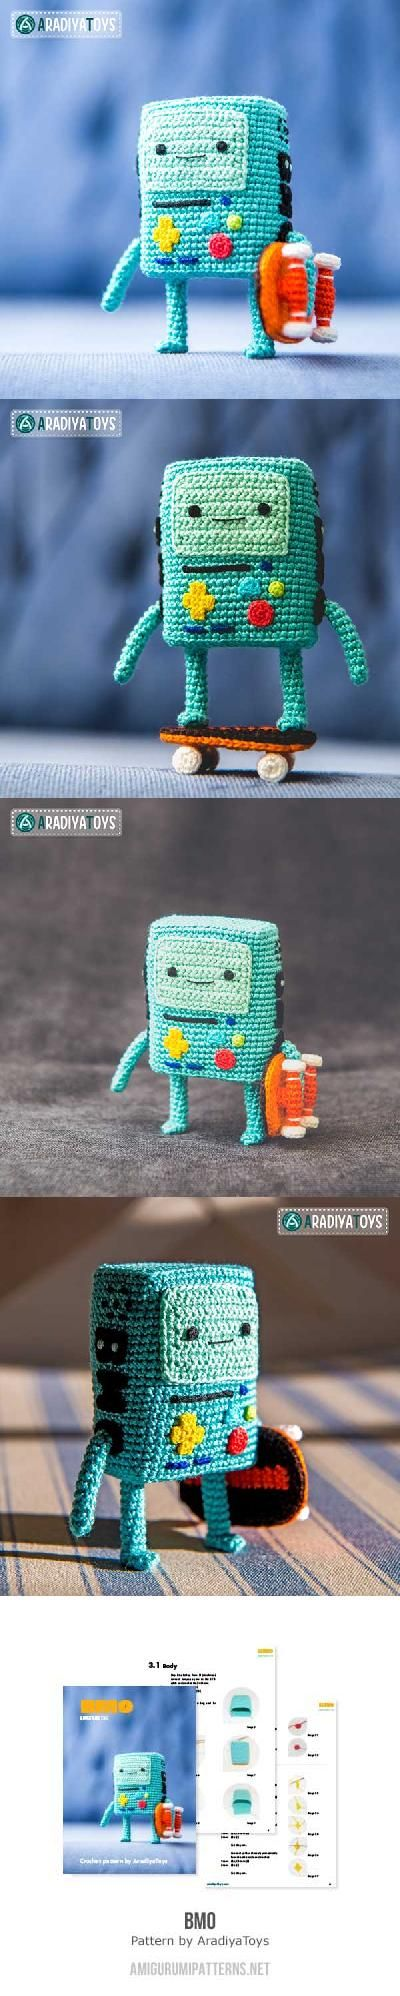 BMO (Adventure time) amigurumi pattern by AradiyaToys